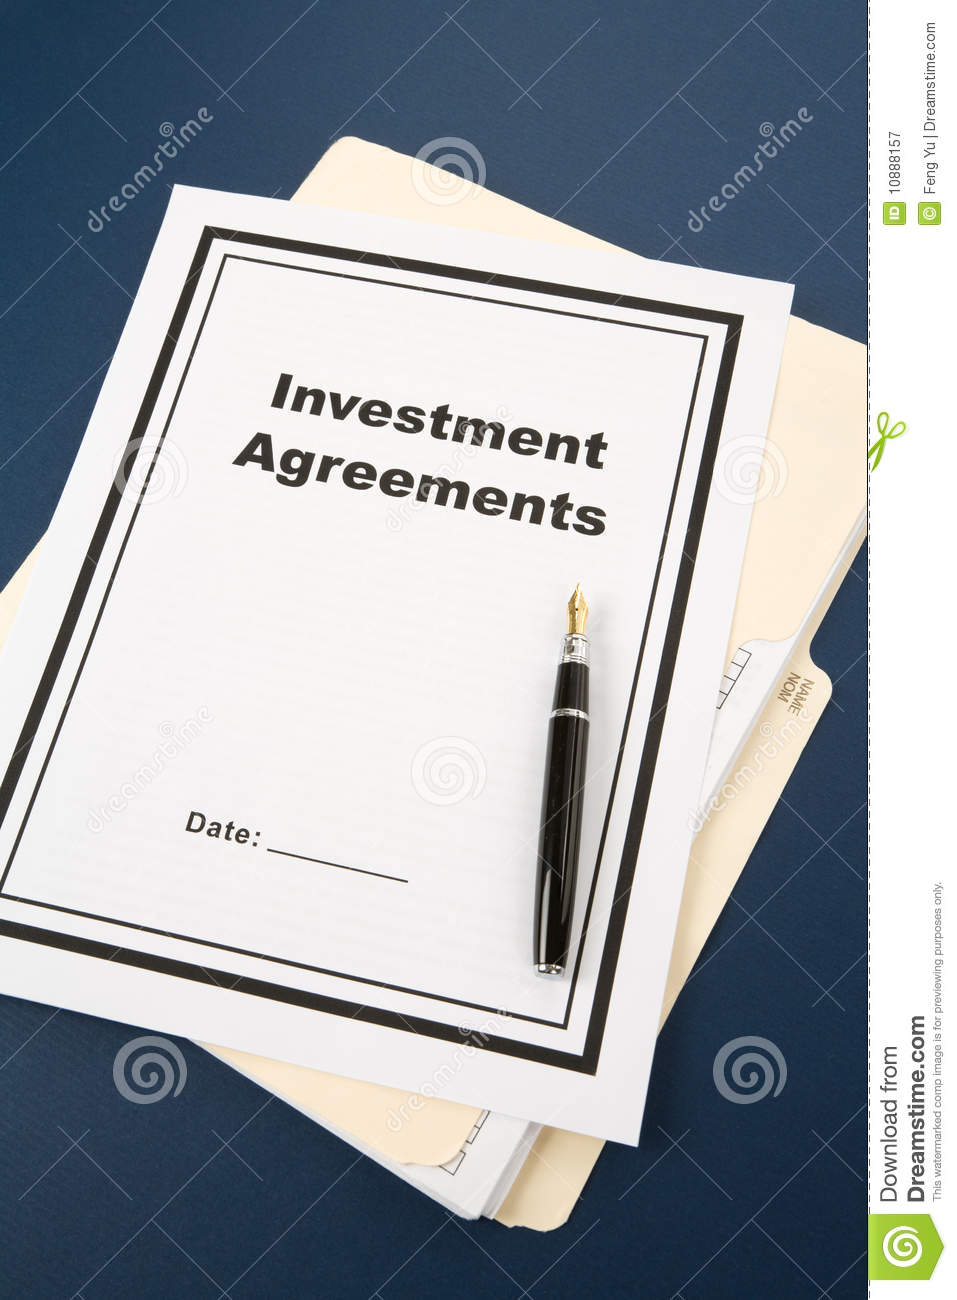 Download Investment Agreement Stock Image. Image Of Agreement - 10888157